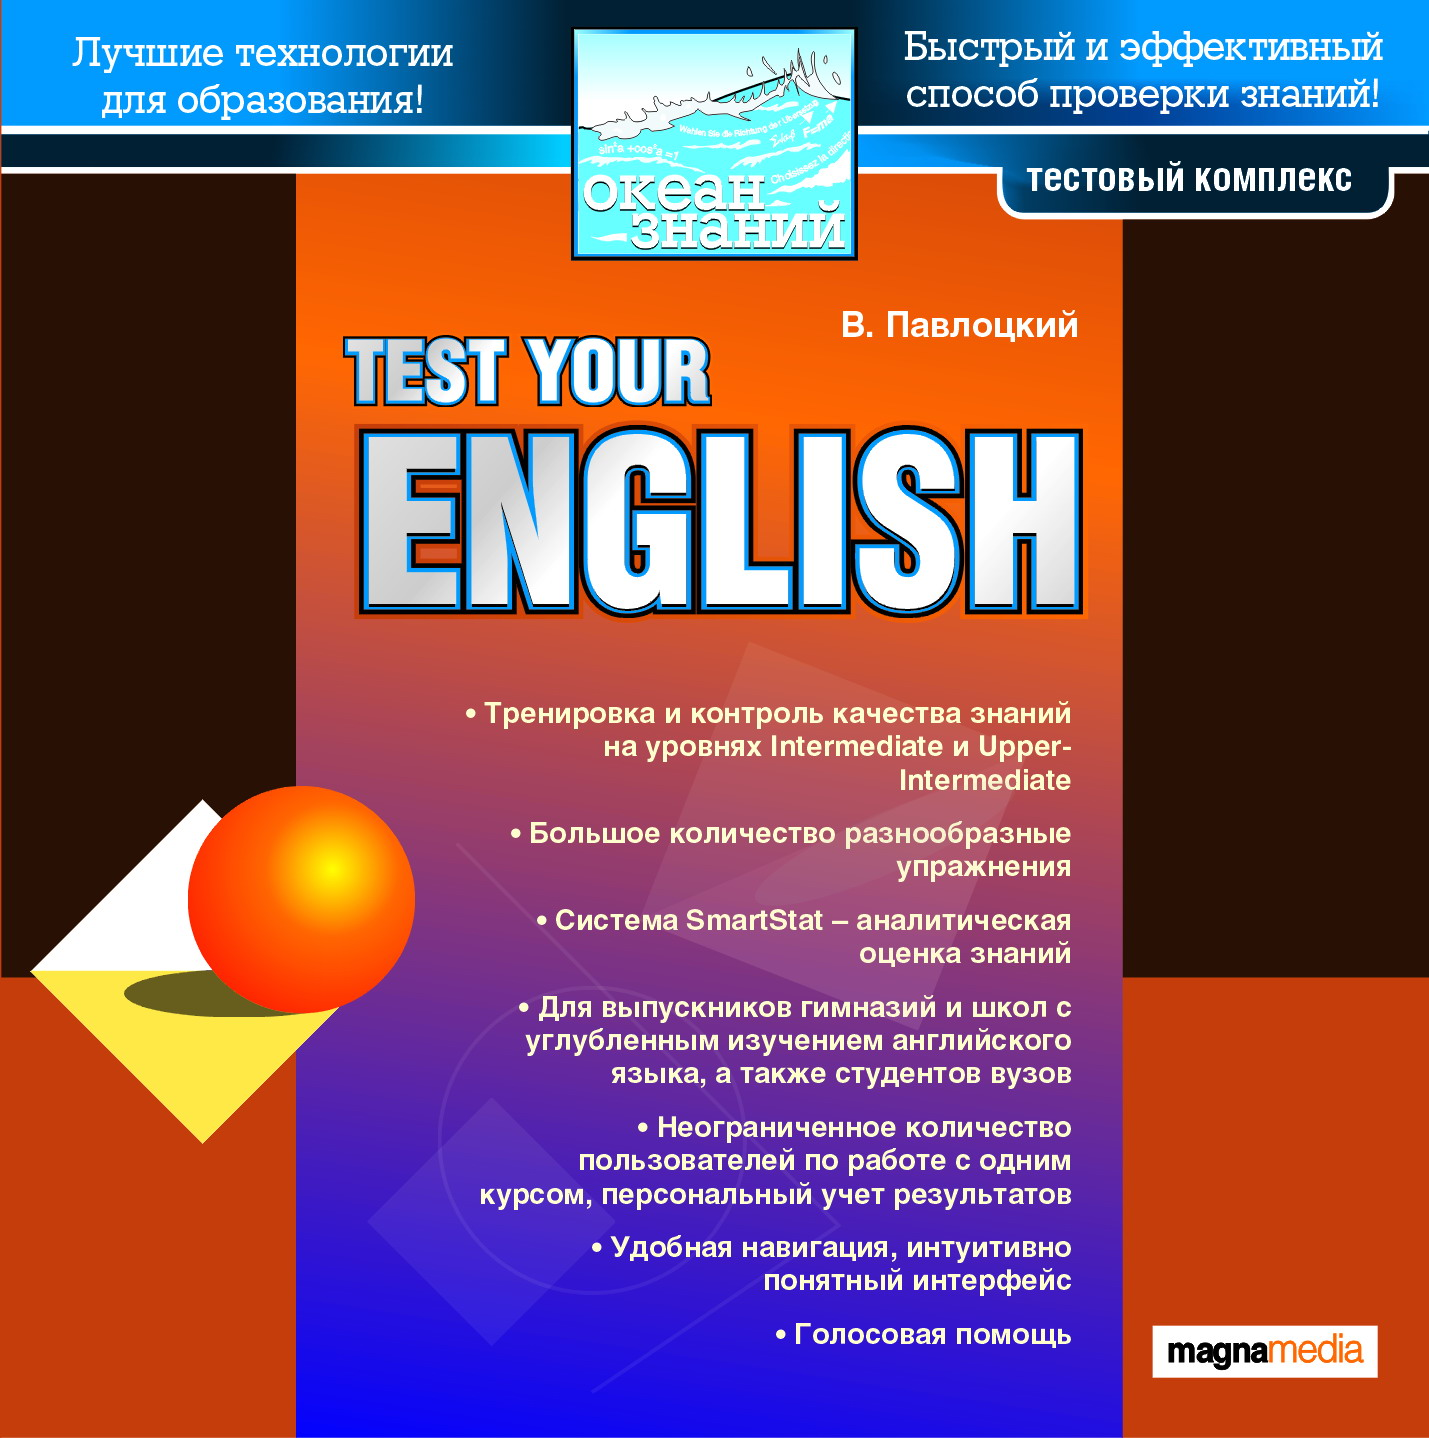 �������� ��������. Test your English